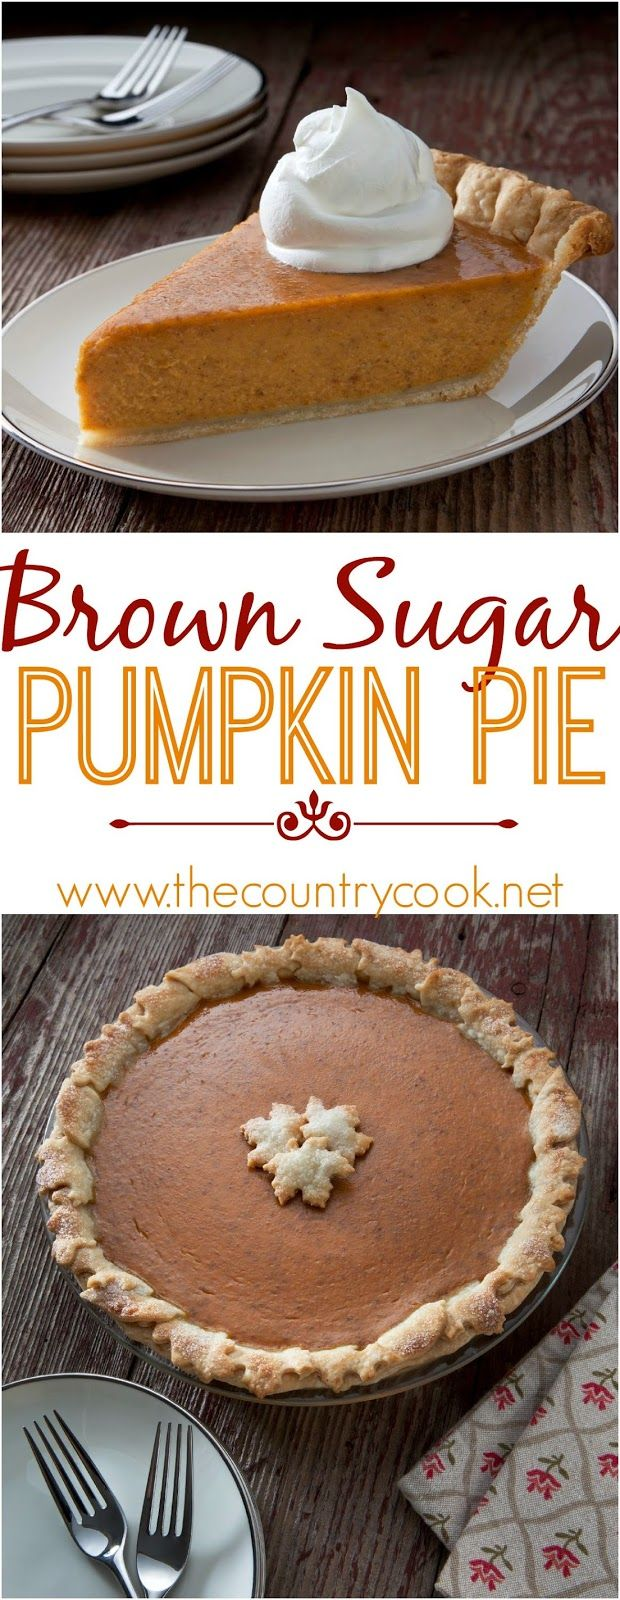 Brown Sugar Pumpkin Pie recipe from The Country Cook. If you are looking for the…